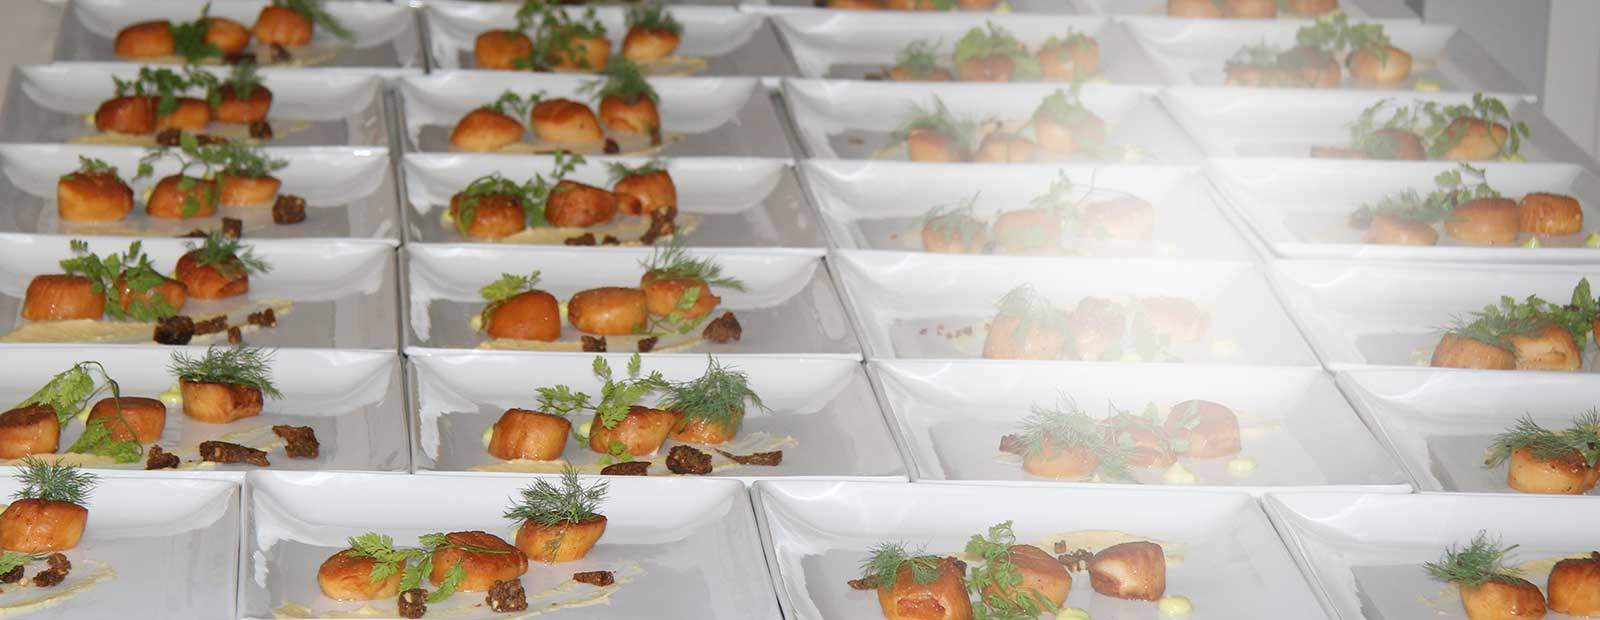 vip-catering